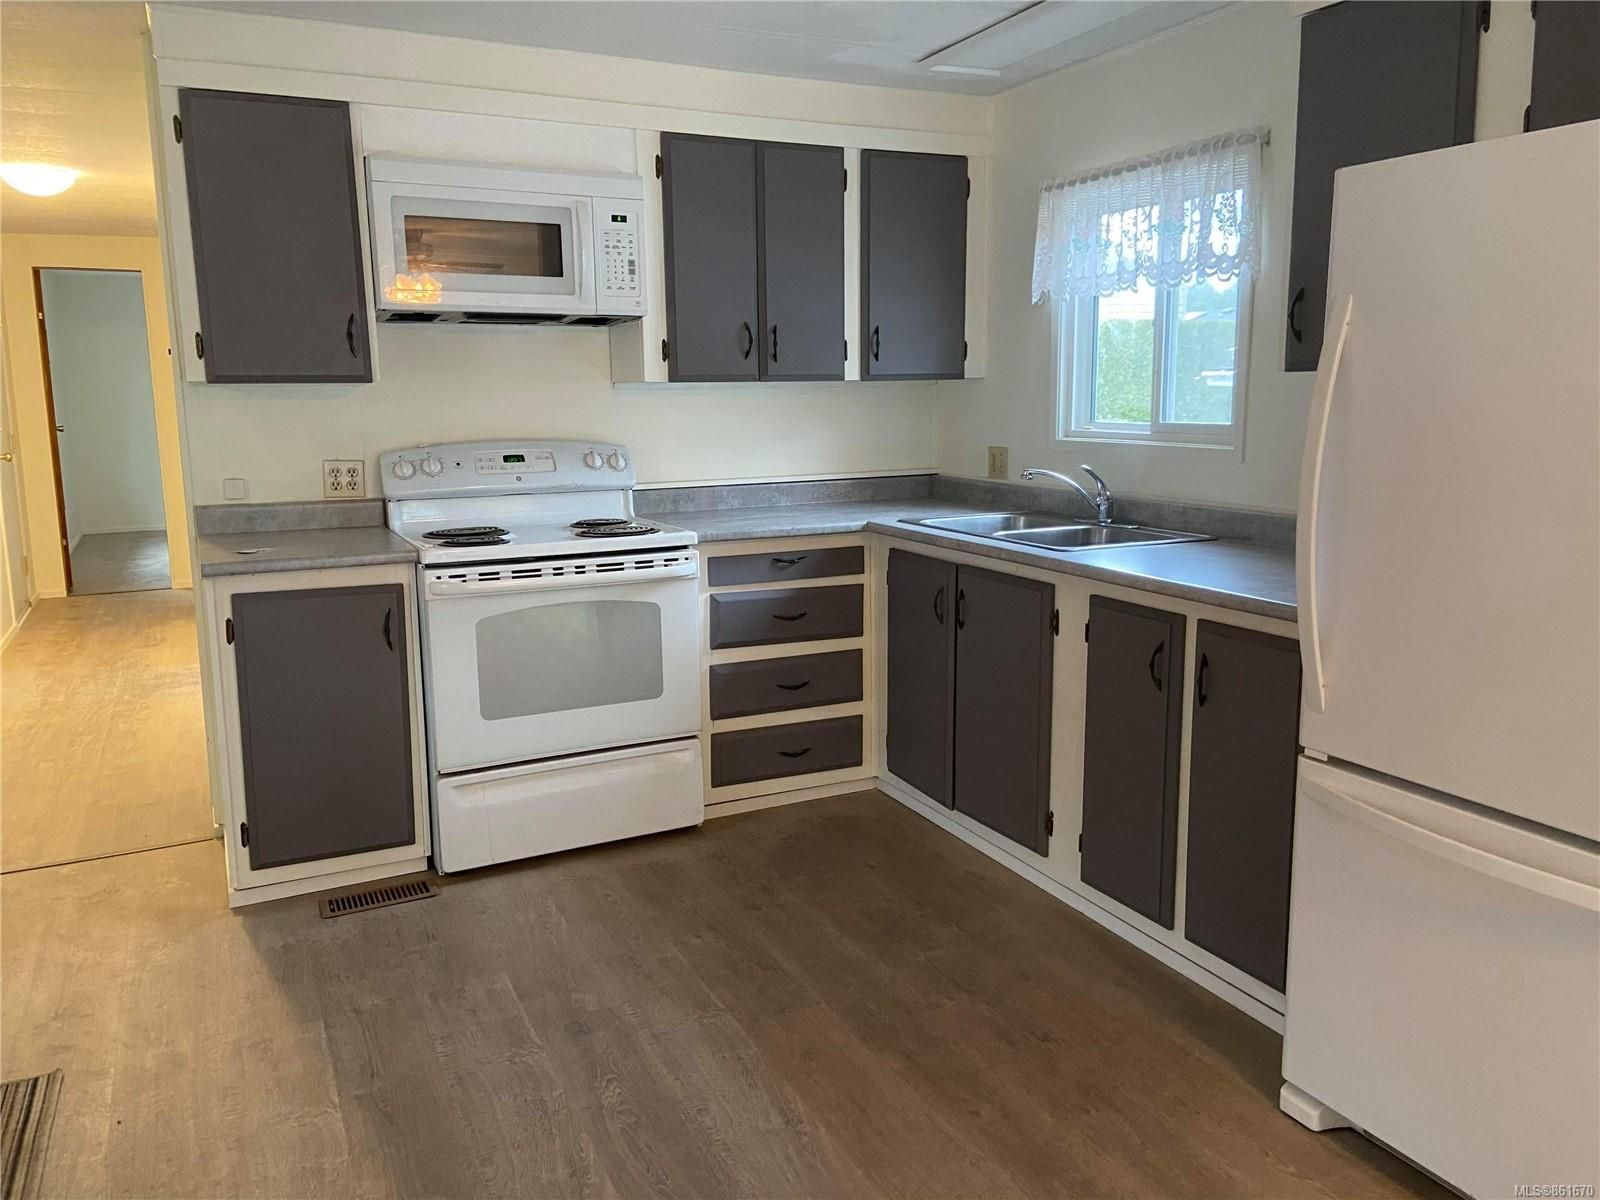 Photo 4: Photos: 23 541 Jim Cram Dr in : Du Ladysmith Manufactured Home for sale (Duncan)  : MLS®# 861670